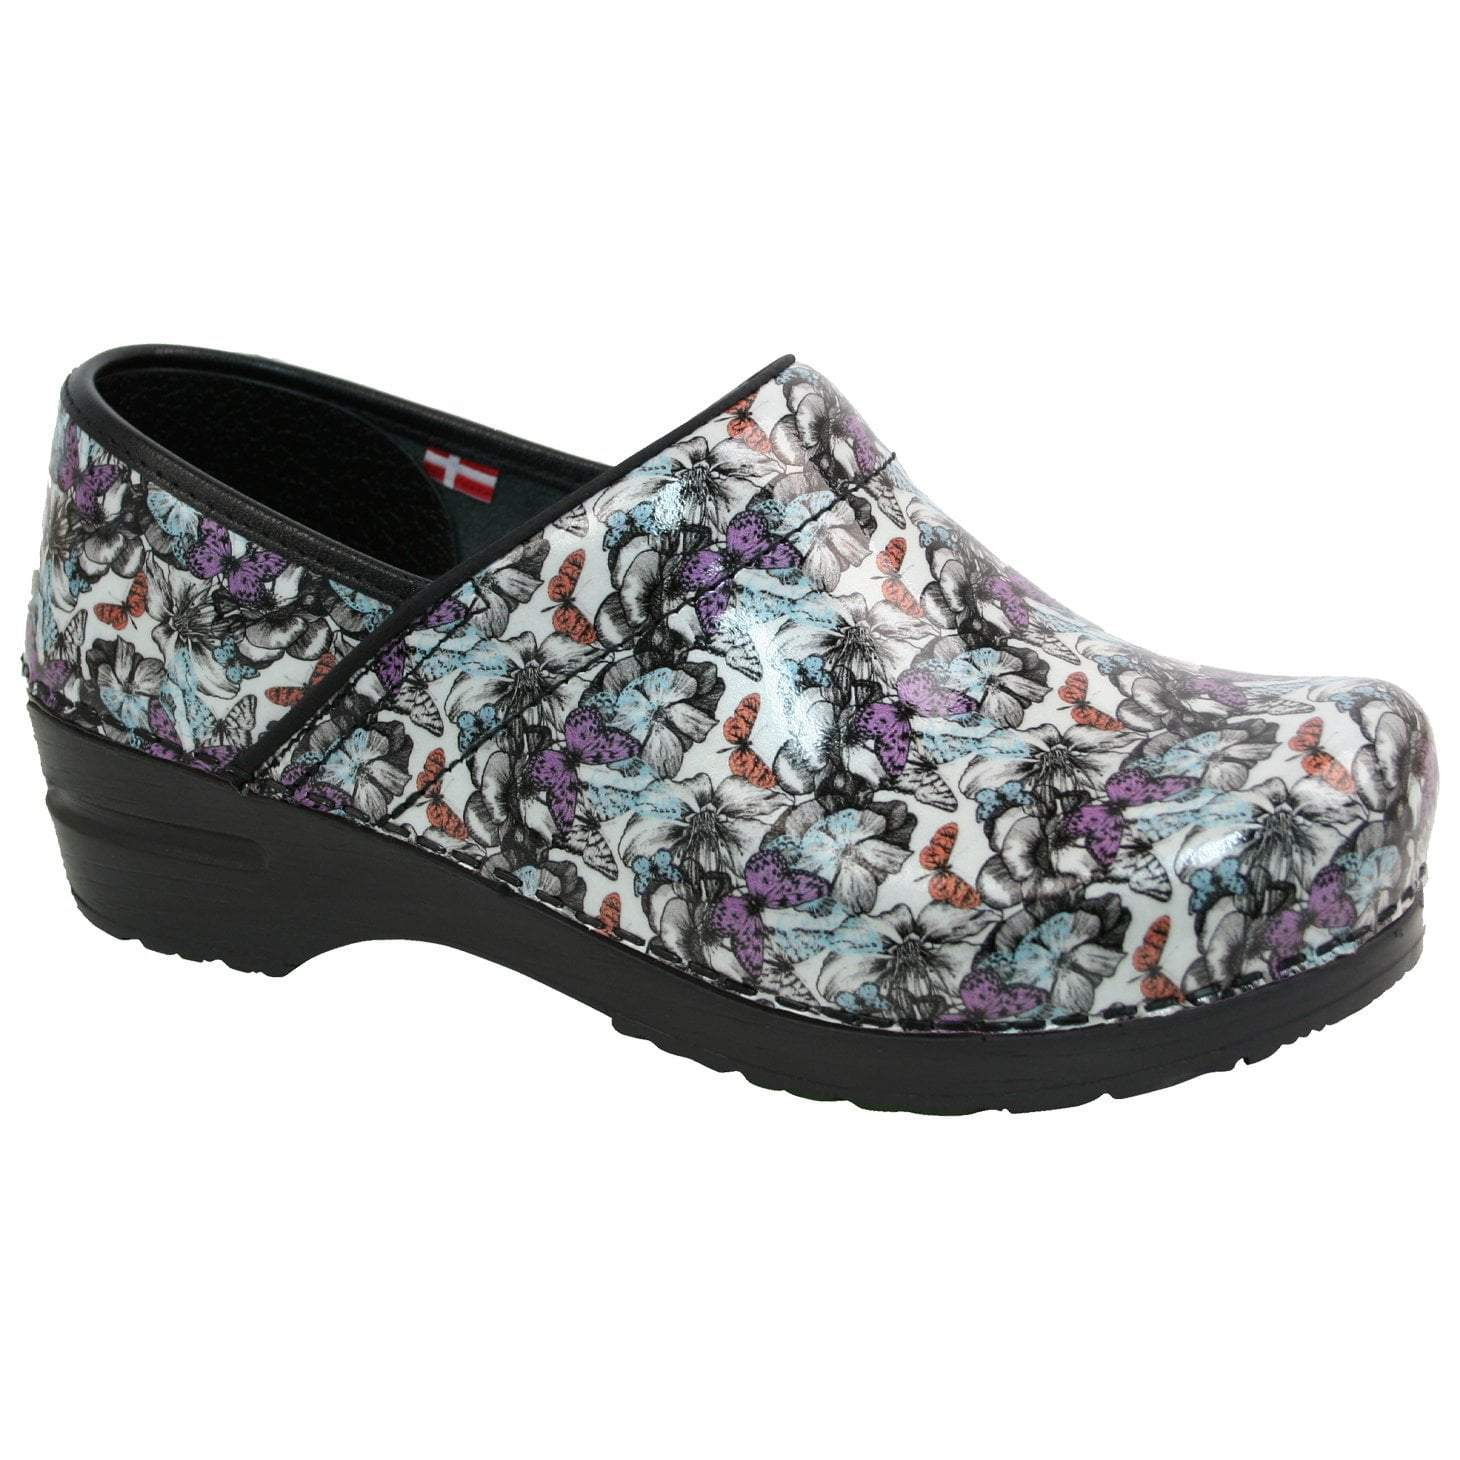 Sanita Amelia Women's Closed Back Clog